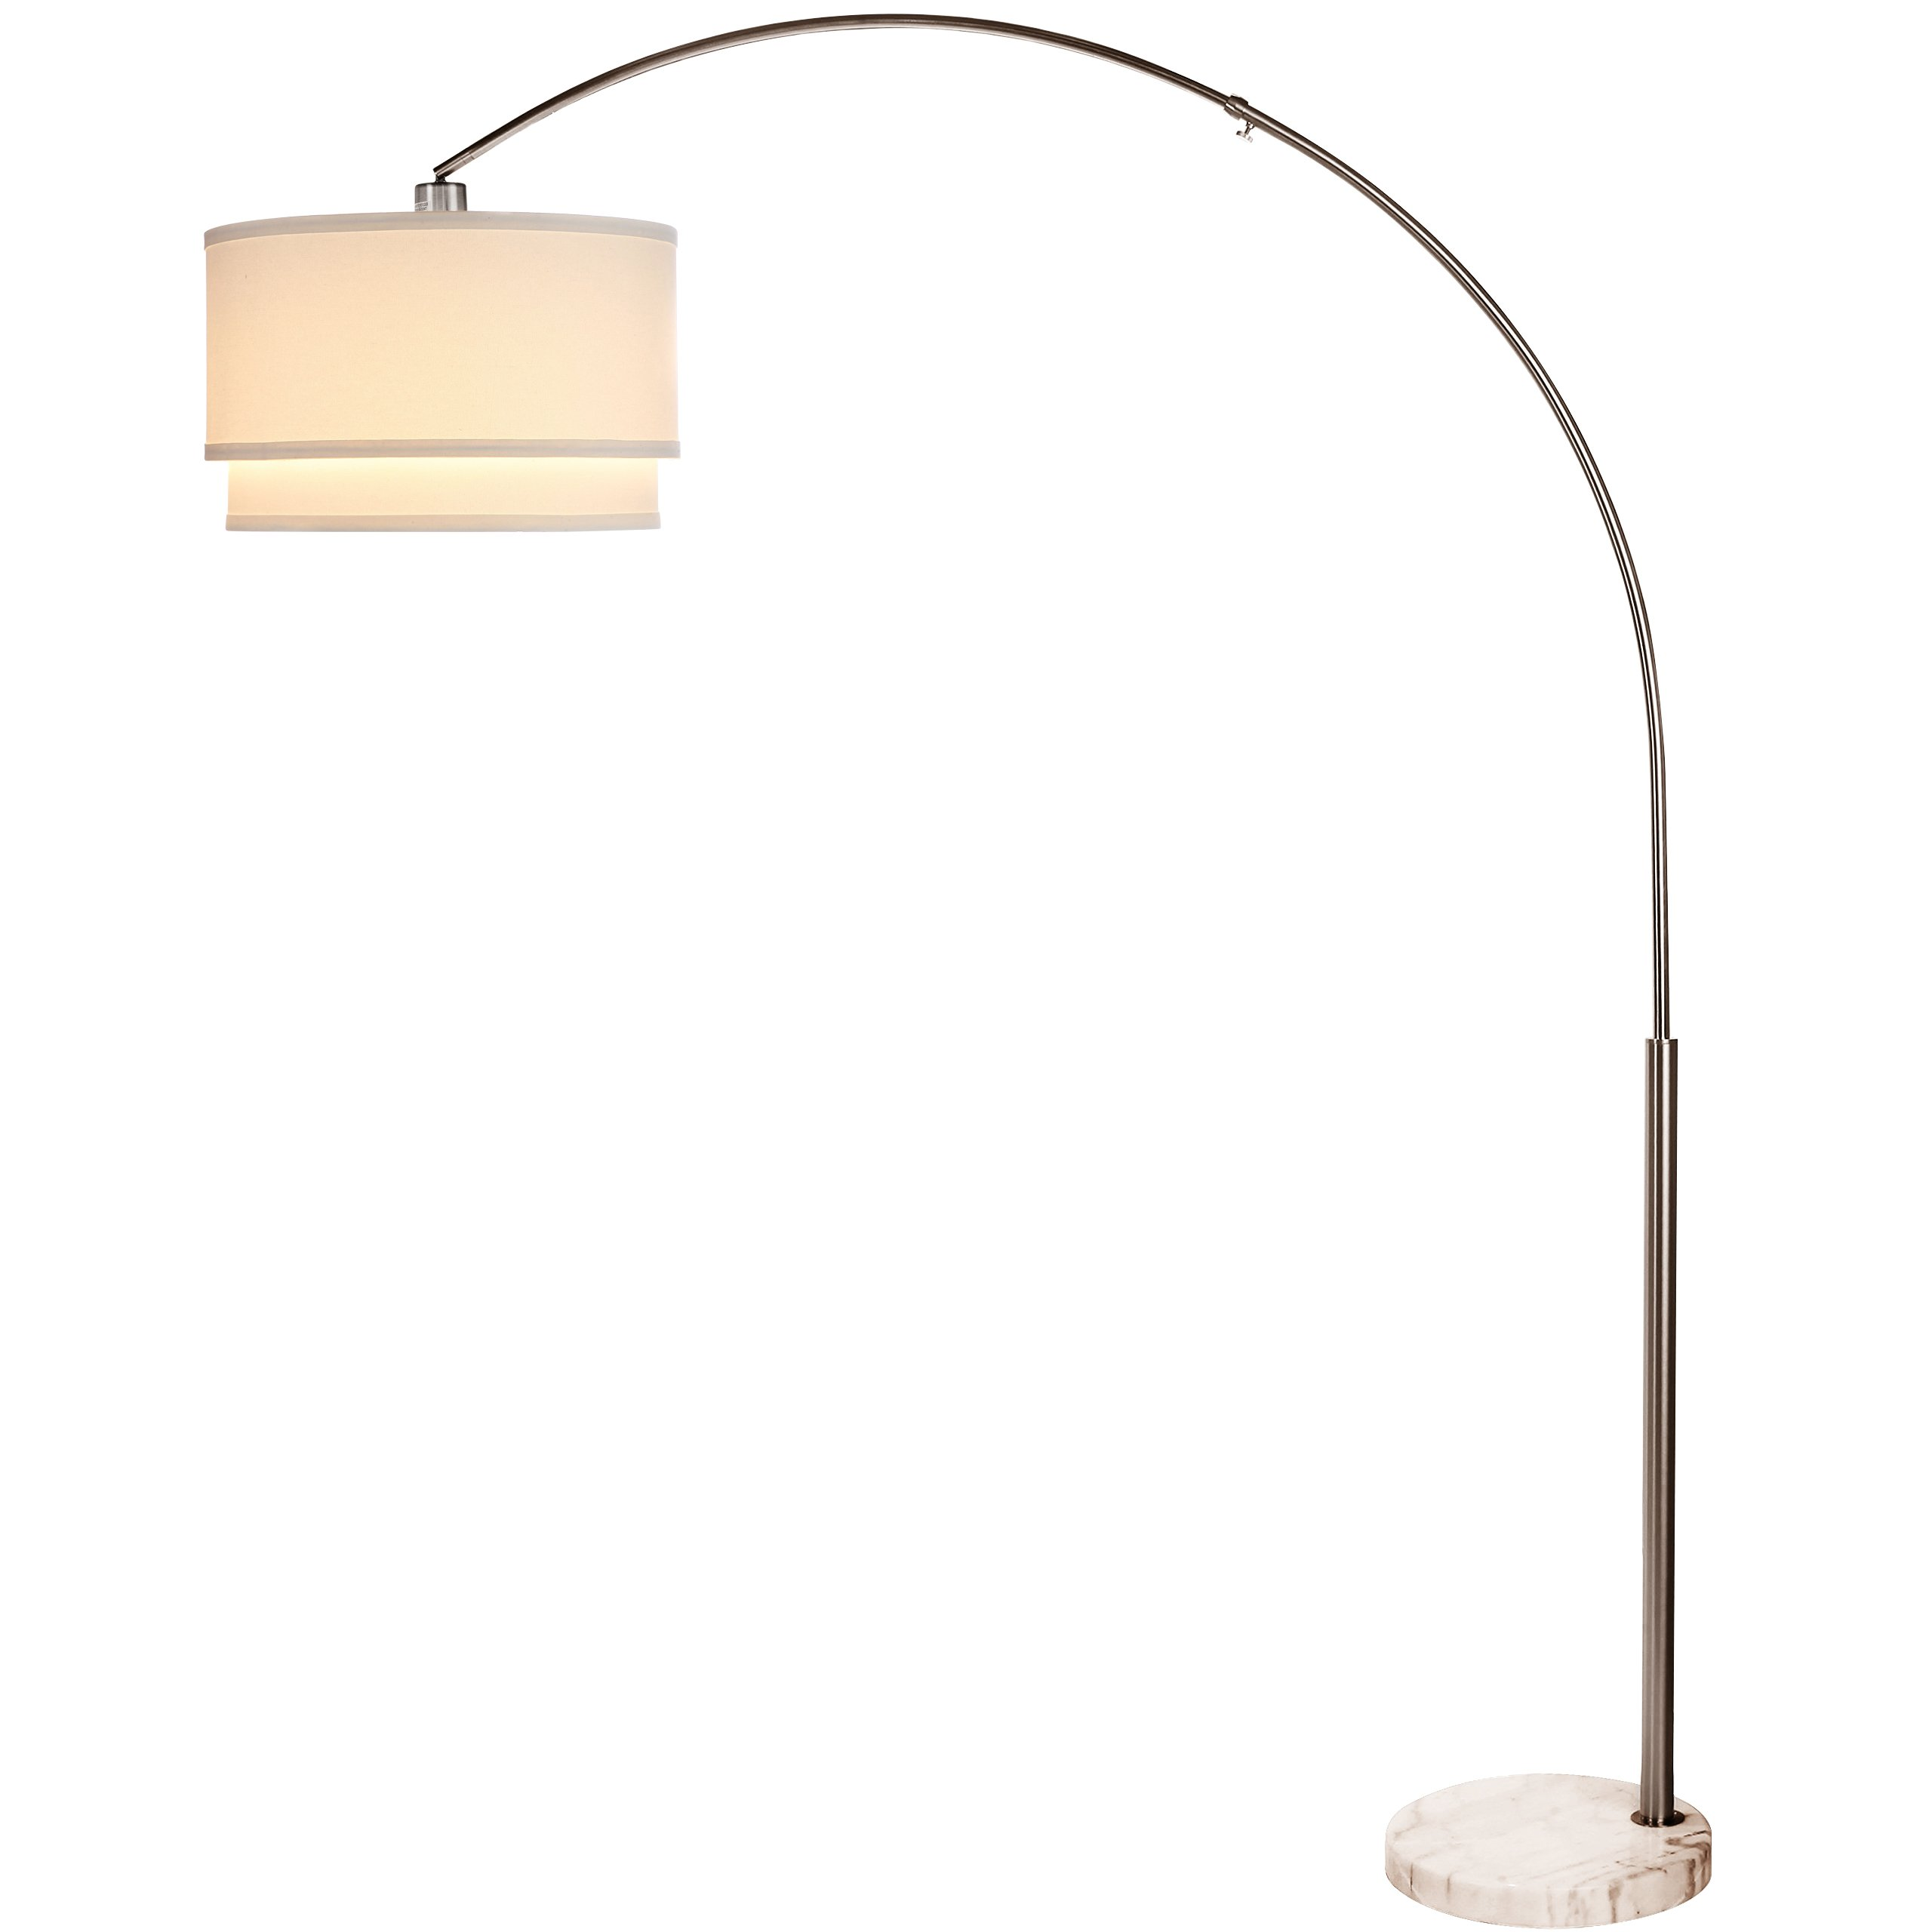 Brightech - Mason LED Floor Lamp- Modern Arc Lamp with Hanging Shade and Marble Base - 9.5 Watt Energy Saving LightPro LED Bulb Included - Mood Office Living Room Ambience Lighting - Satin Nickel